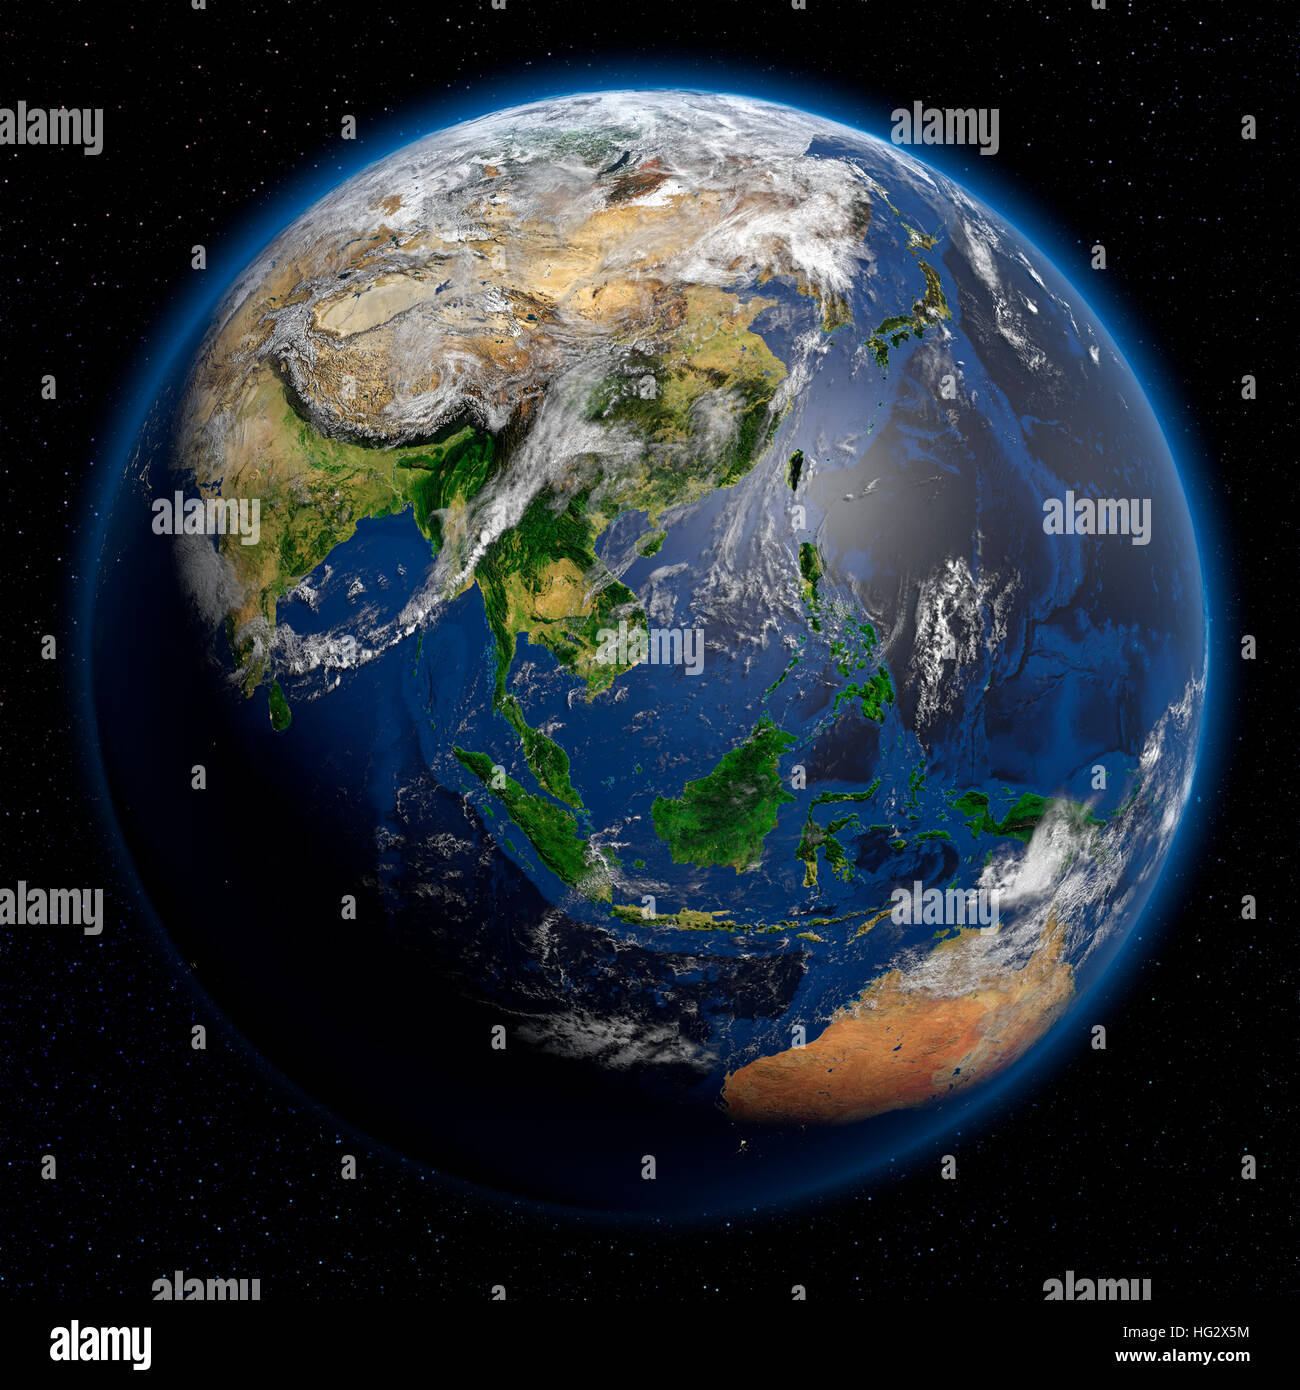 Earth viewed from space showing South East Asia. Realistic digital illustration including relief map hill shading - Stock Image